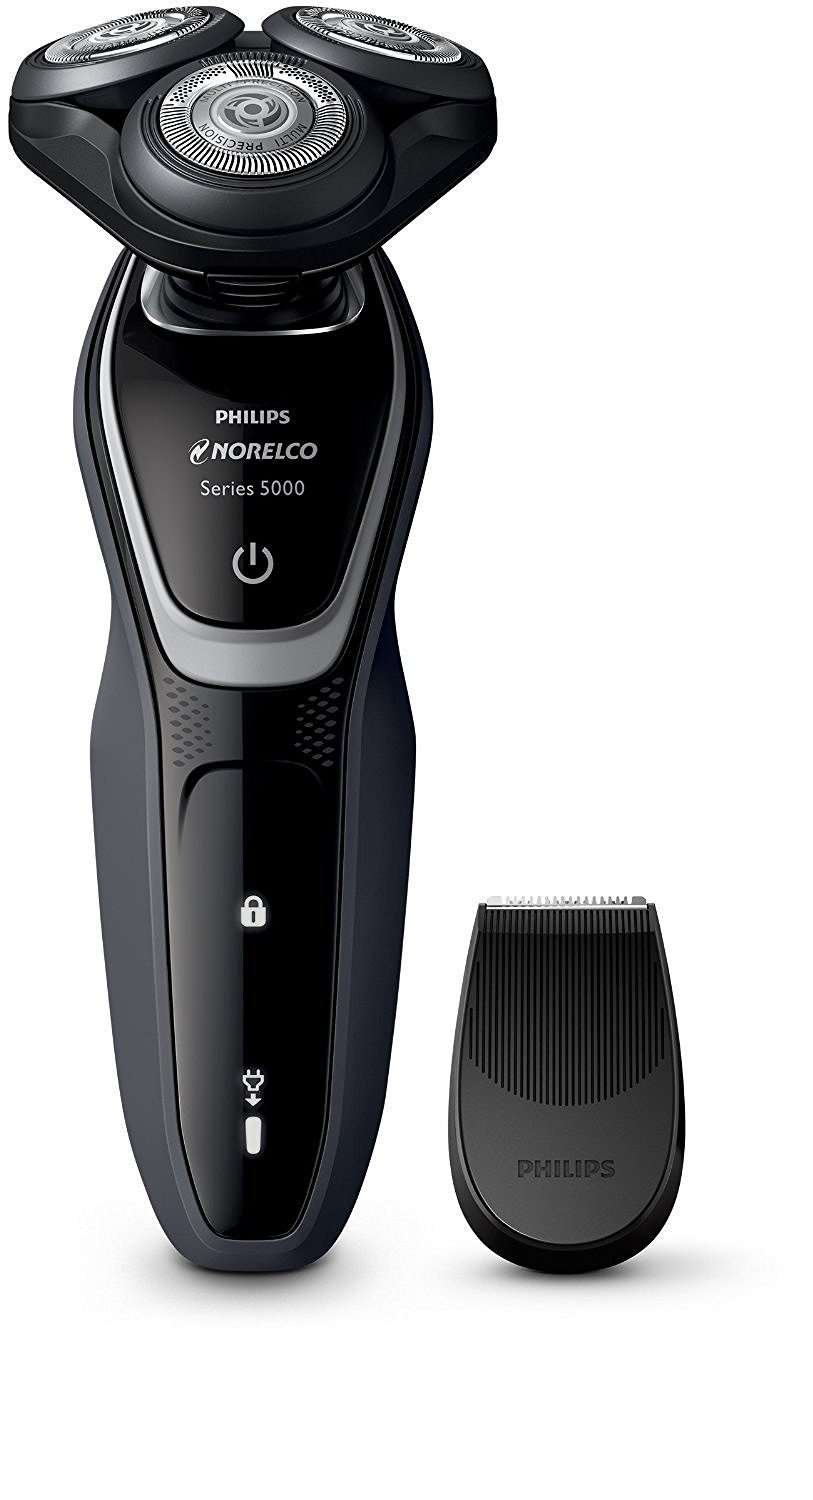 Philips Norelco WATERPROOF Electric Shaver and Beard Trimmer with BONUS FREE Jet Cleaning Solution Included